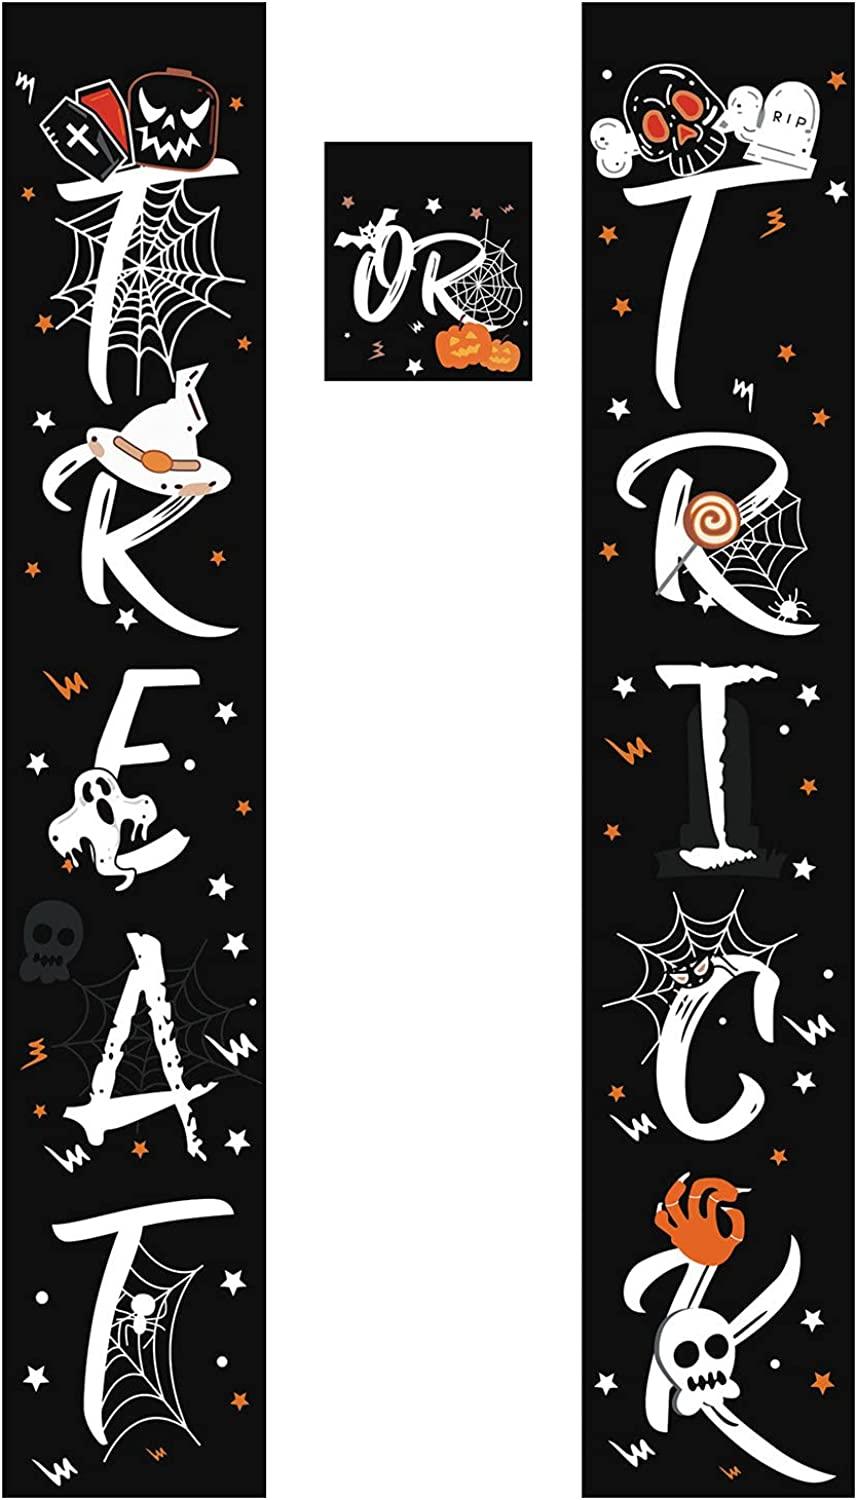 YQRDSHJS Halloween Funny Banner Regular store Max 73% OFF Hanging Porch Decorations Treat